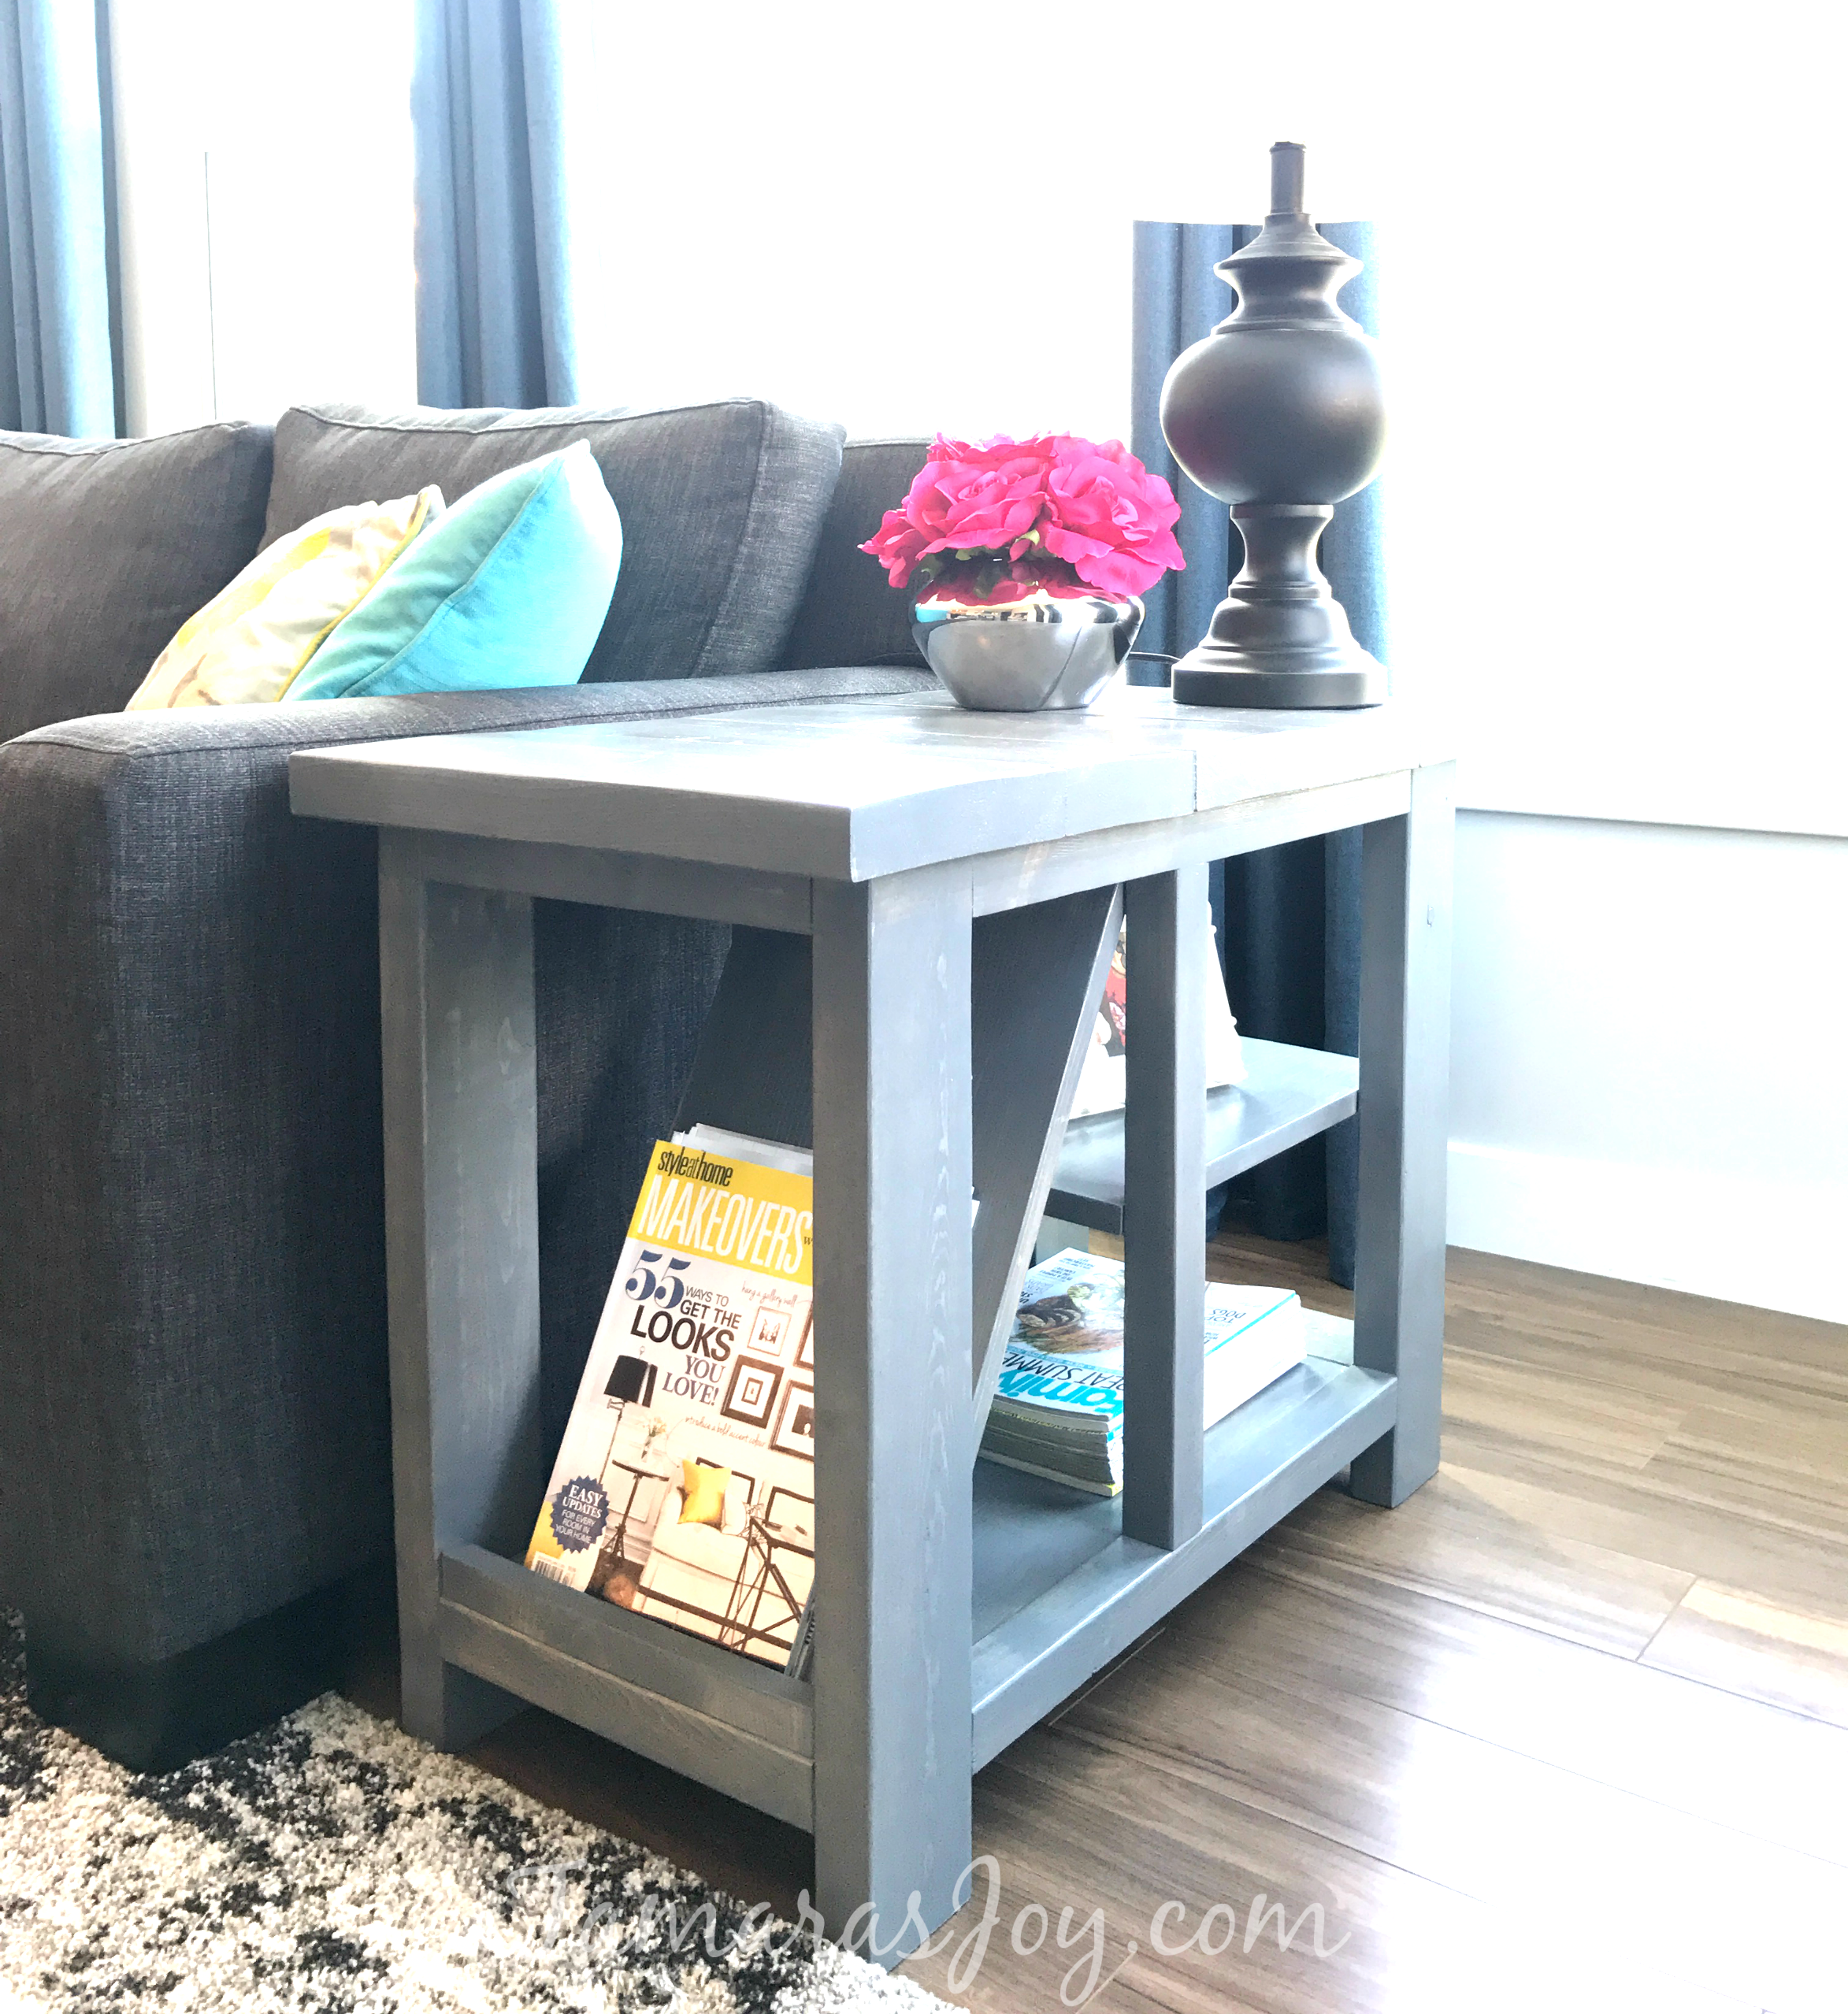 diy rustic side table with free plans tamara joy magazine rack end this designed deep and narrow perfect fit for beside sectional sofa also has plenty storage gold accent coffee